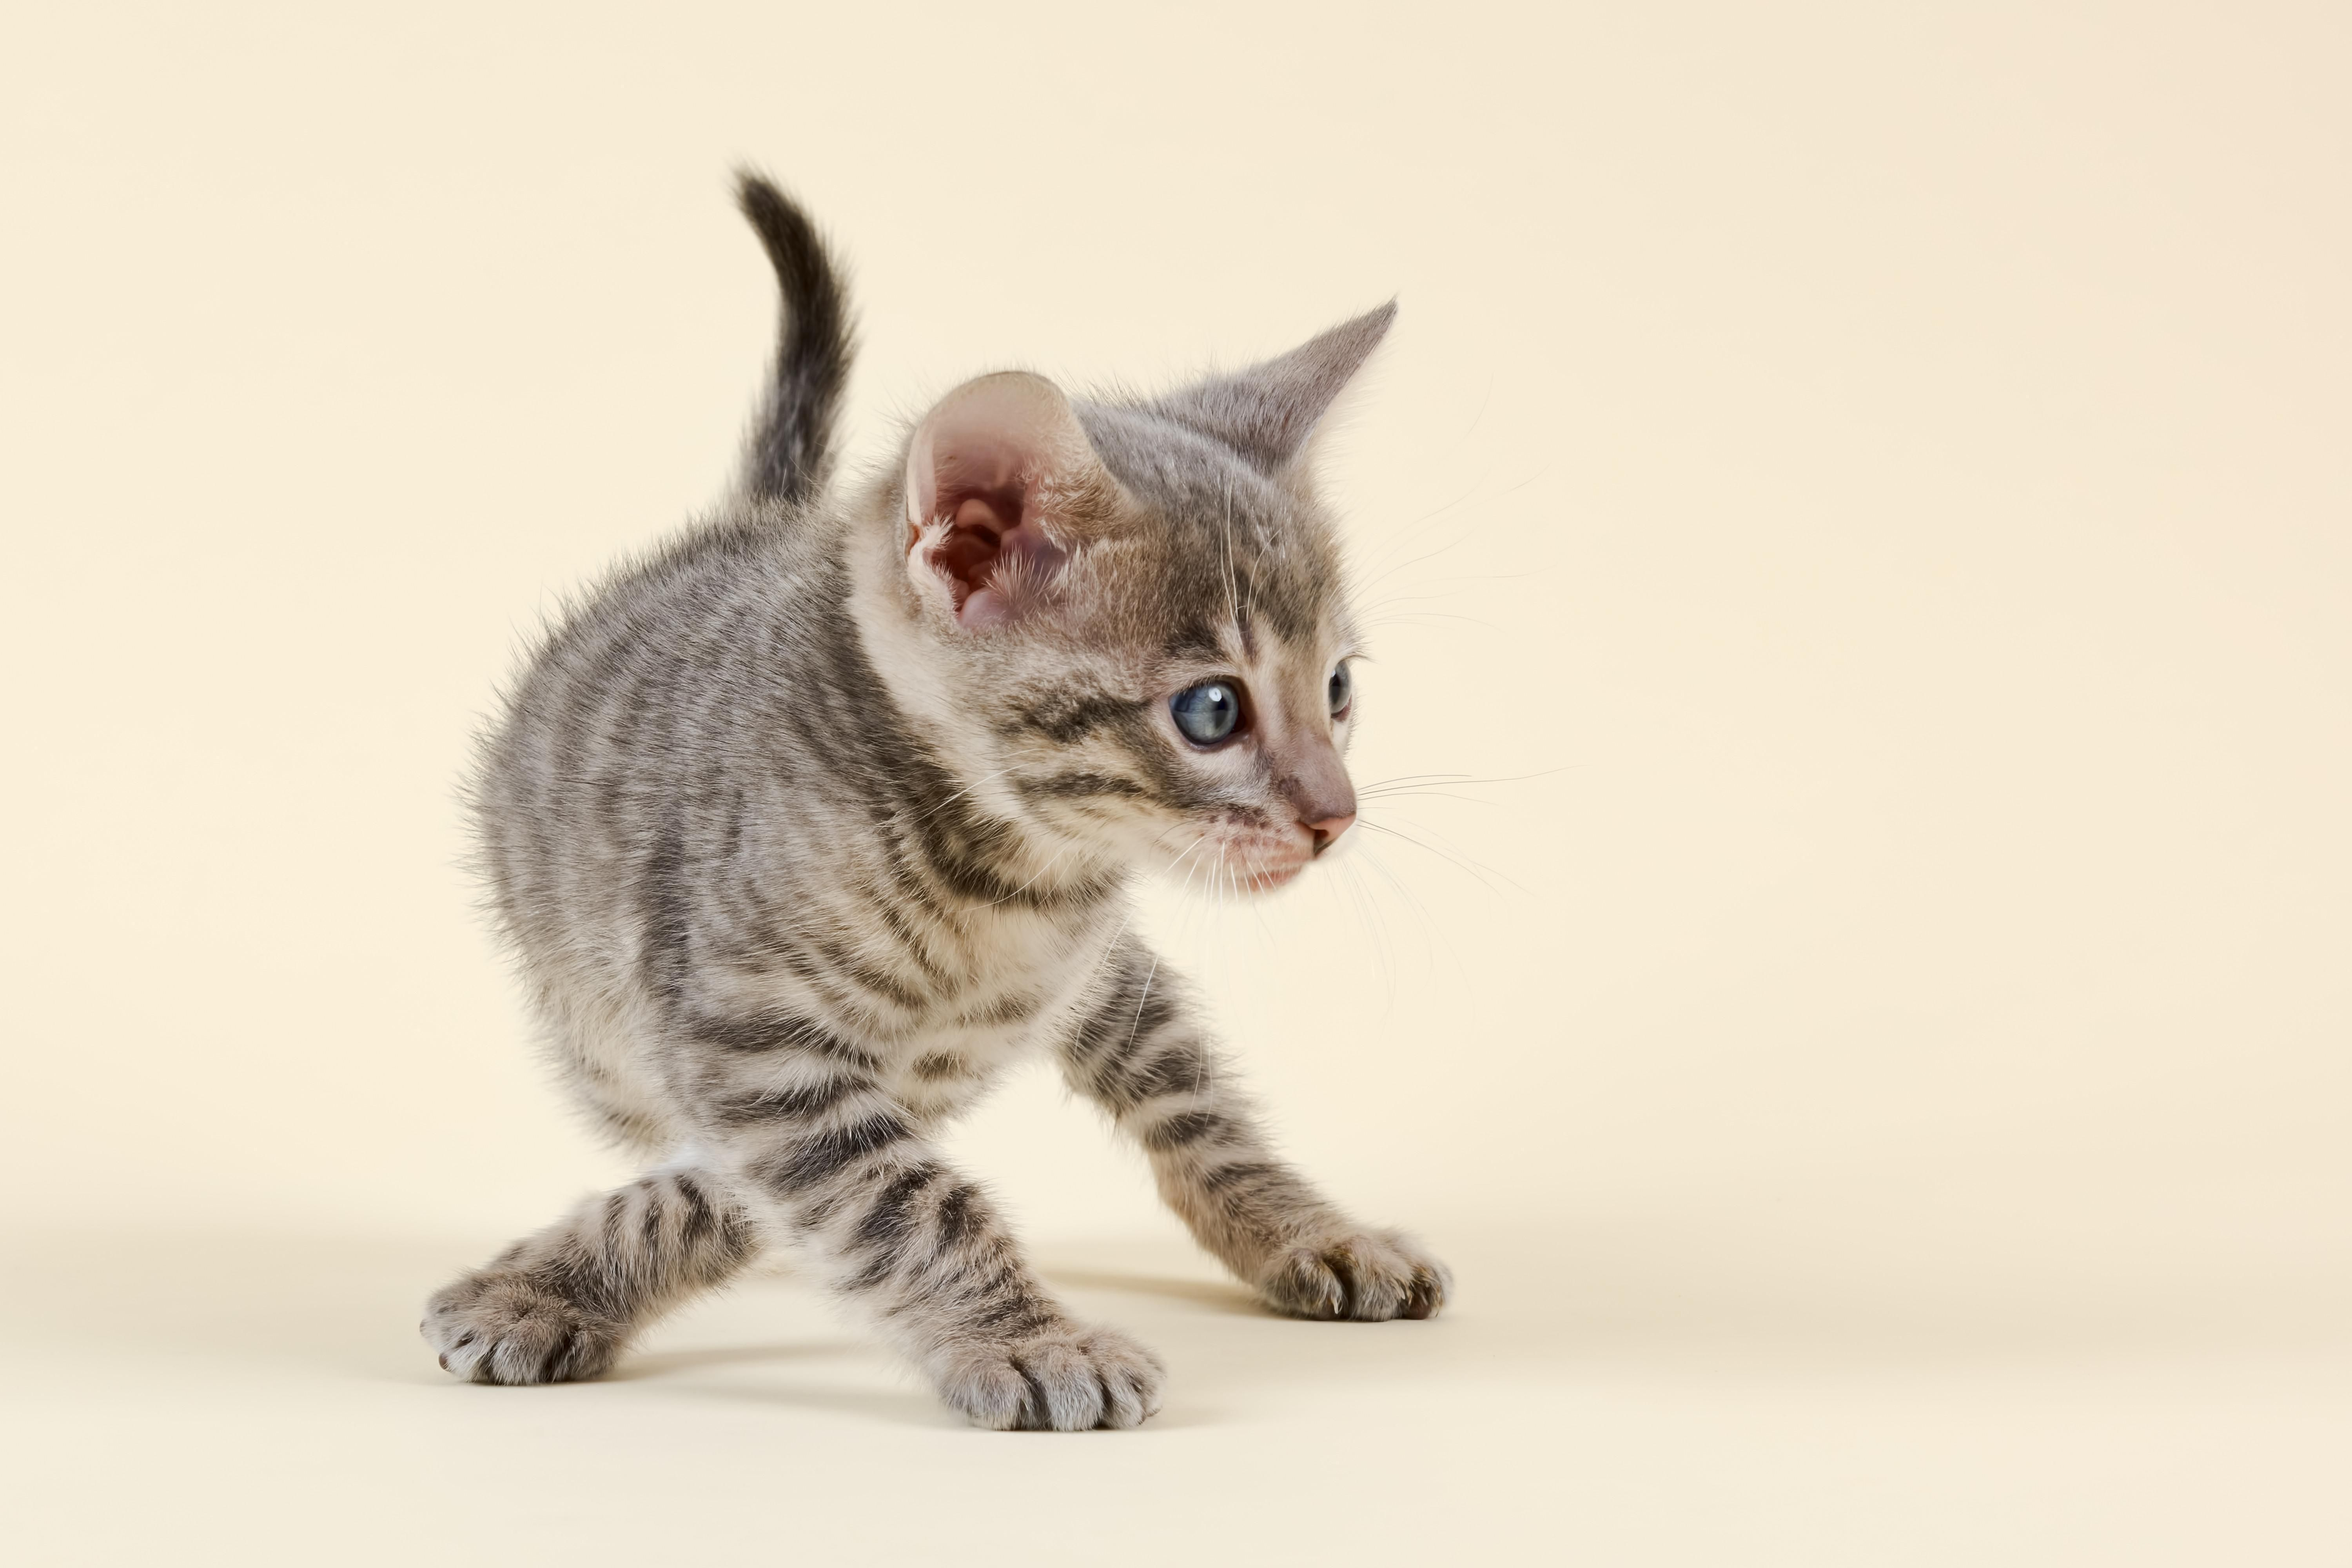 Toyger (Felis silvestris catus), age 6 weeks, with crossed paws